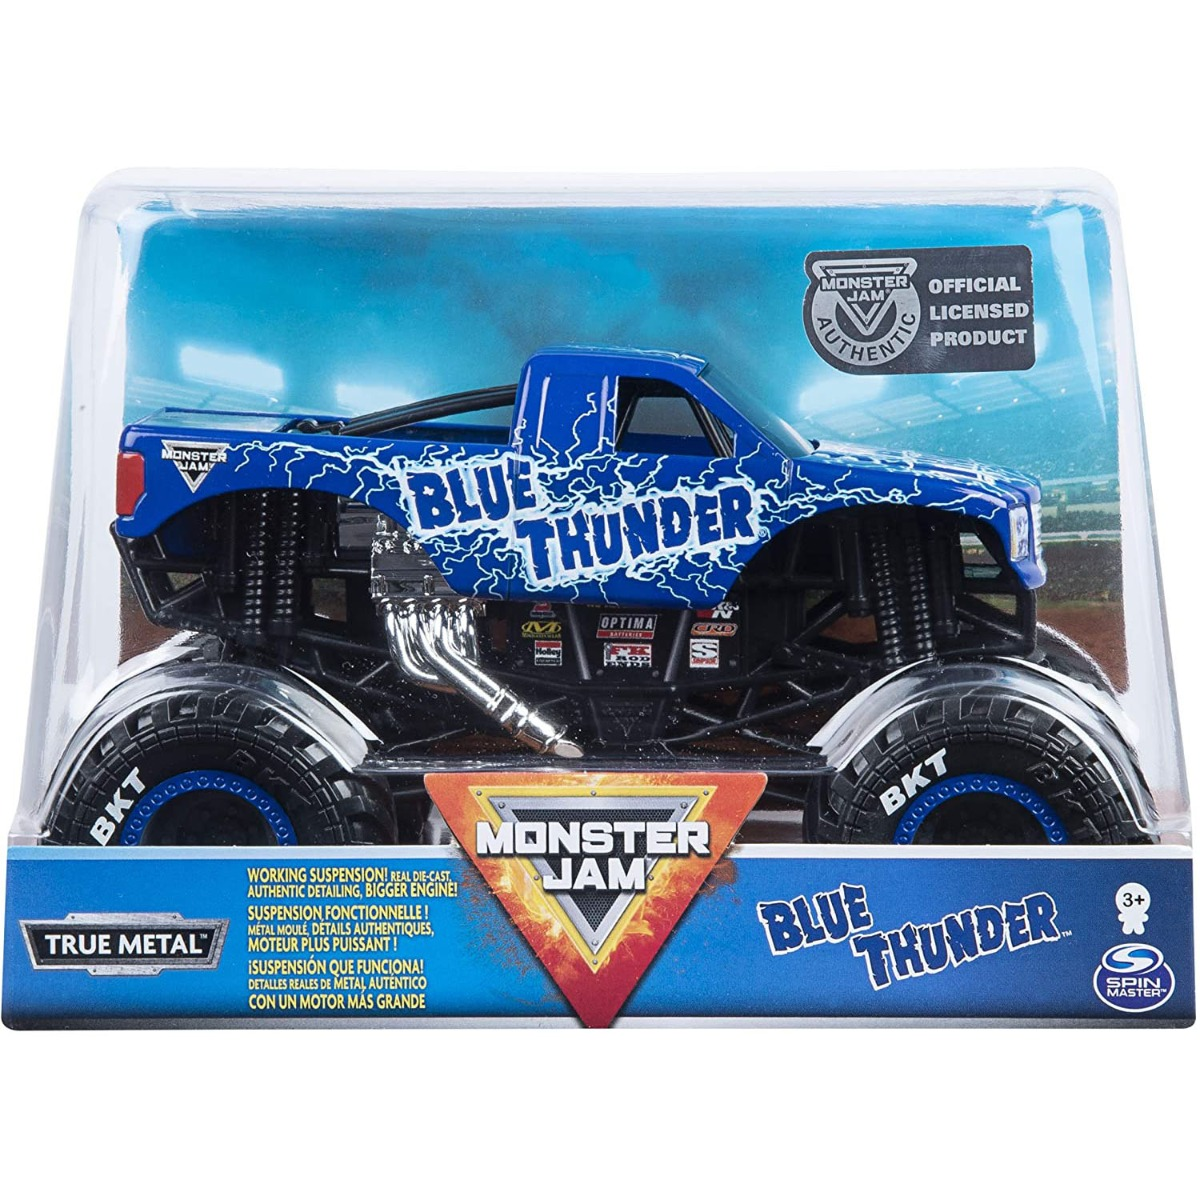 Masinuta Monster Jam, Blue Thunder, Scara 1:24